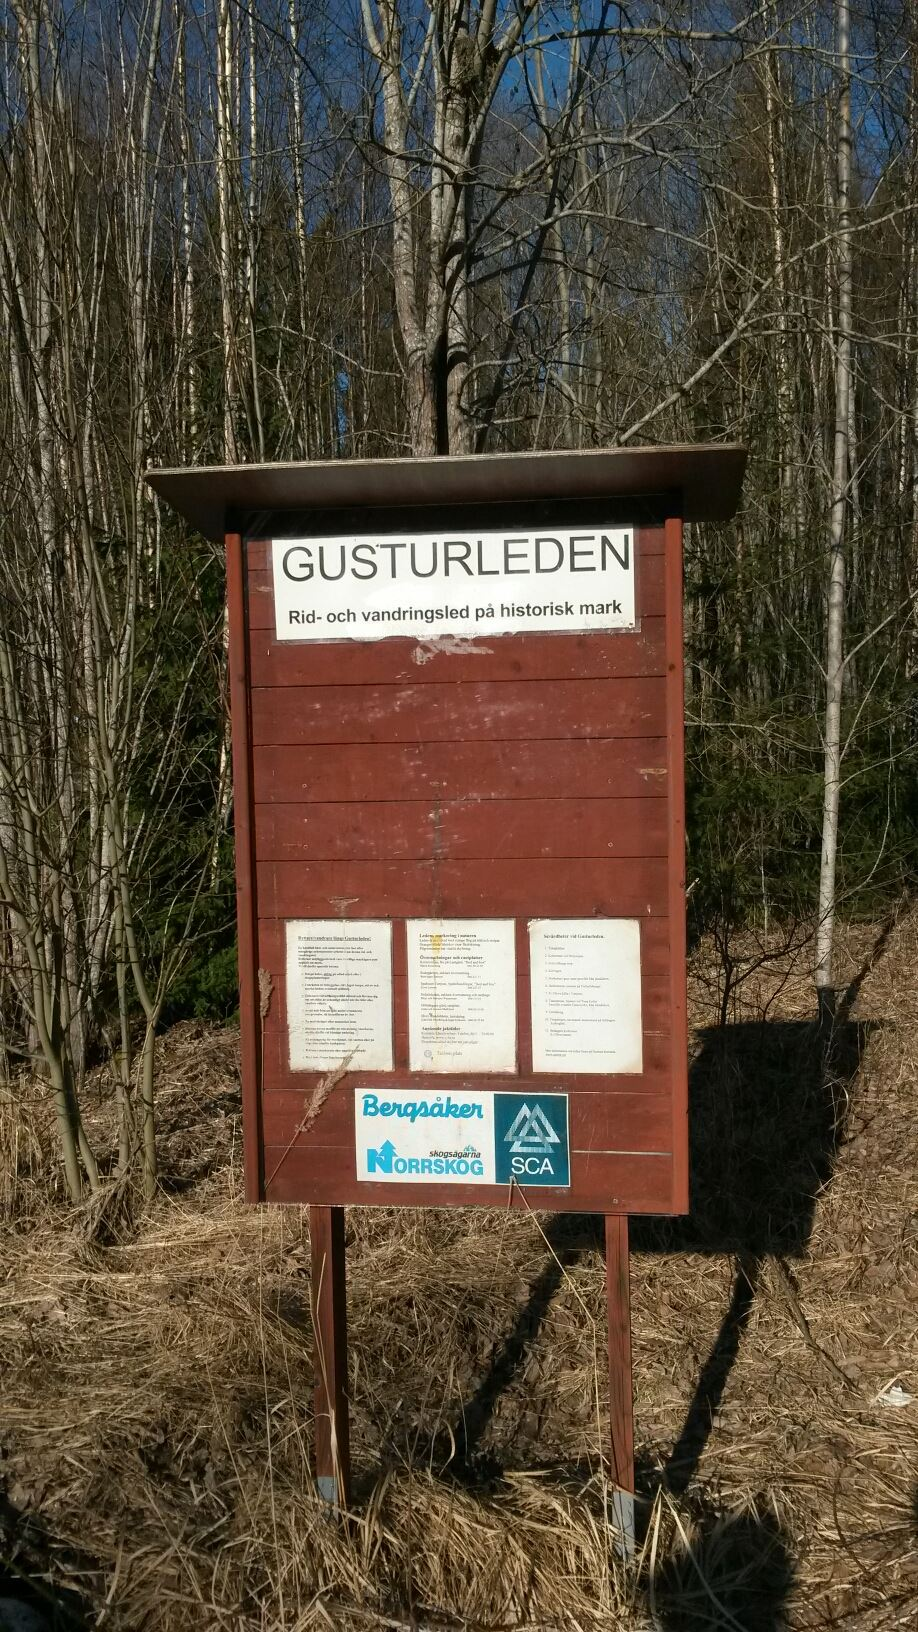 The Gusturleden Trail